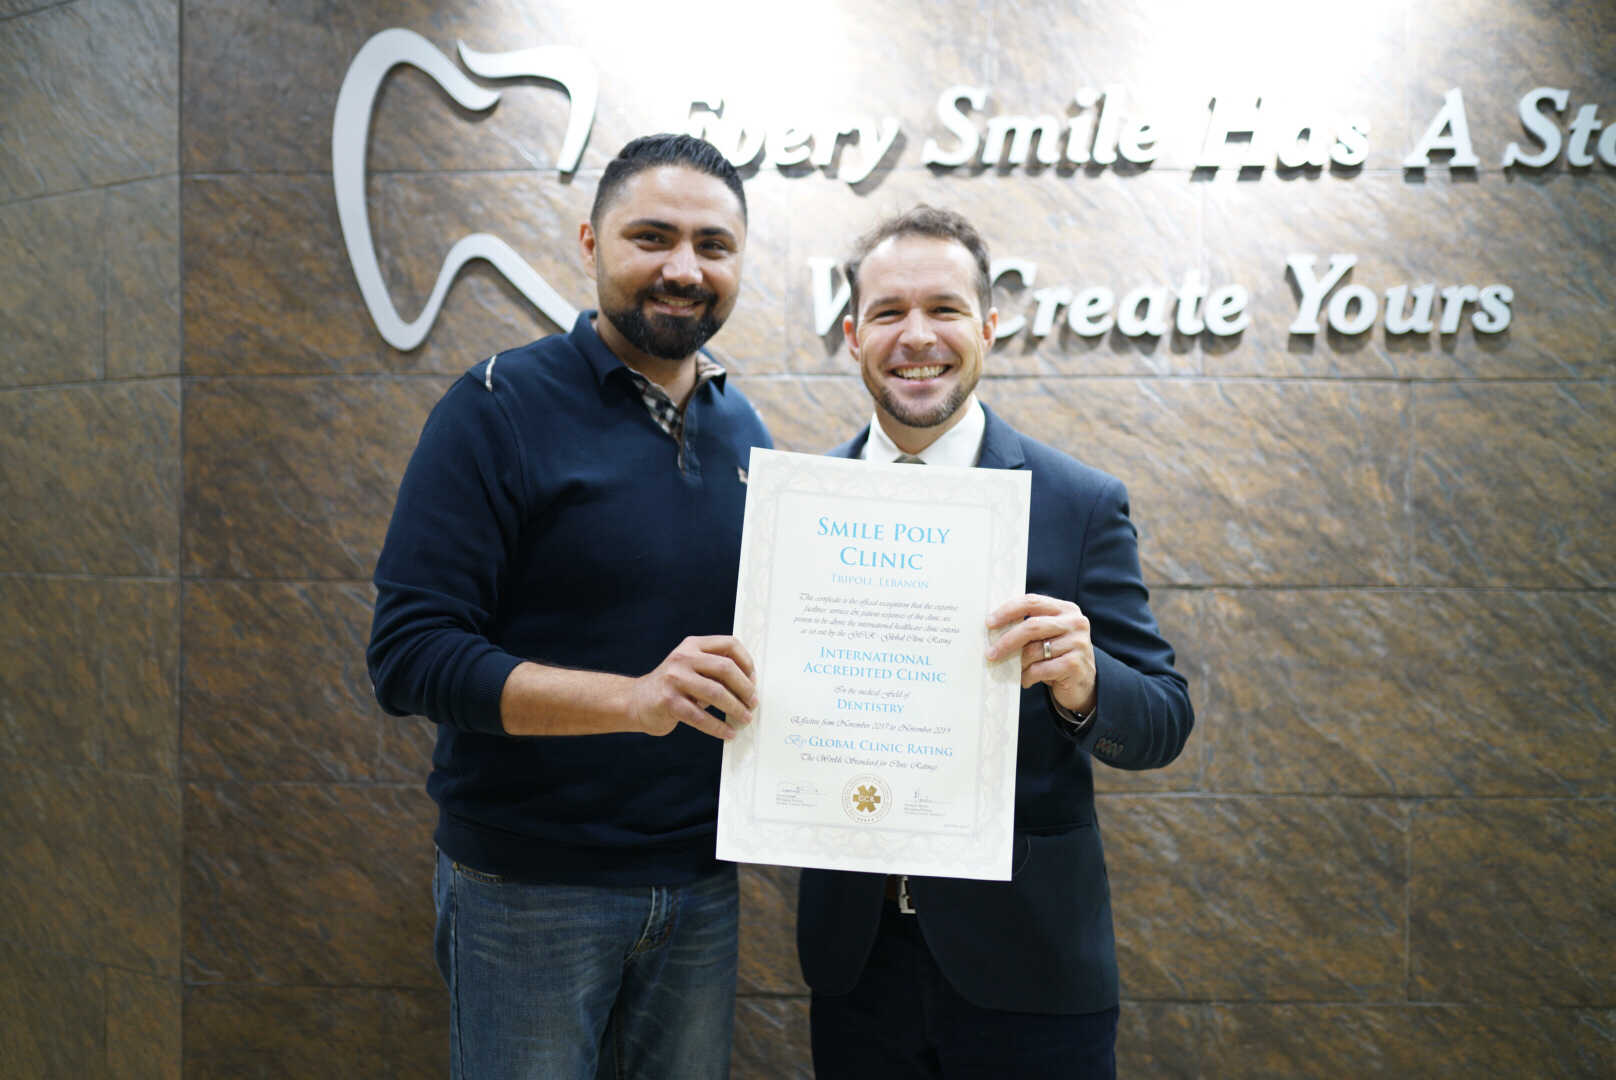 LEBANON: Smile Poly Clinic – GCR™ Internationally Accredited